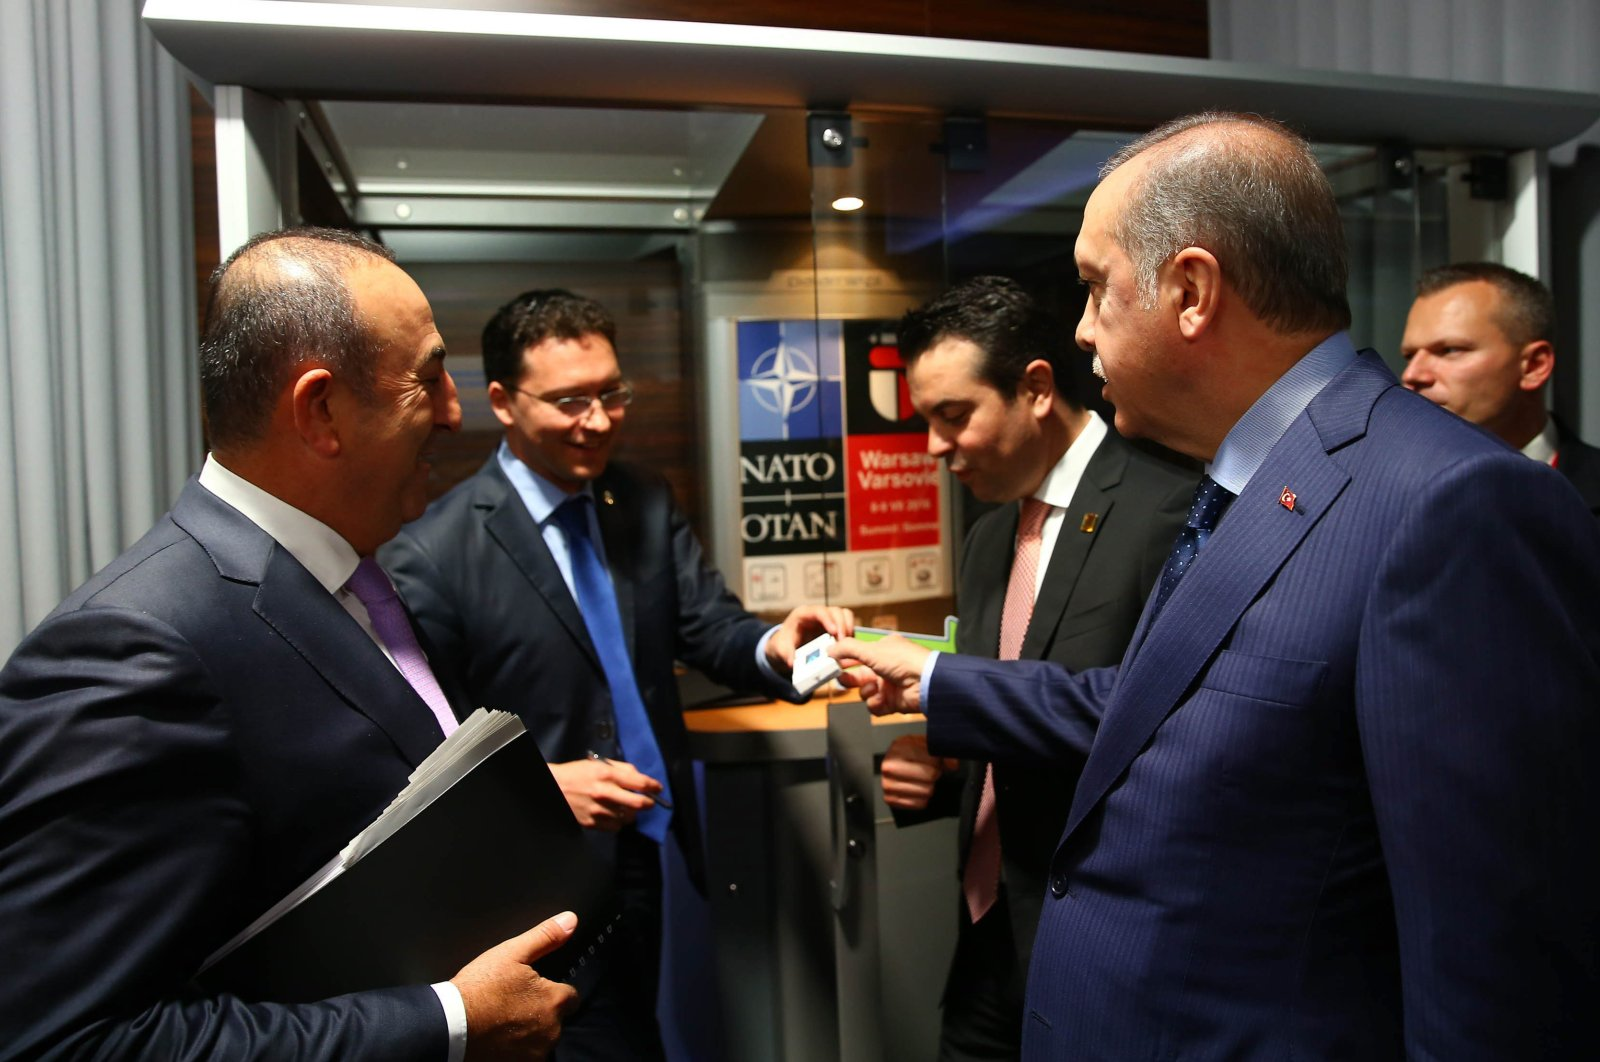 President Recep Tayyip Erdoğan asks Bulgarian Foreign Minister Daniel Mitov to quit smoking on the sidelines of a NATO meeting, in Warsaw, Poland, July 7, 2016. (IHA Photo)